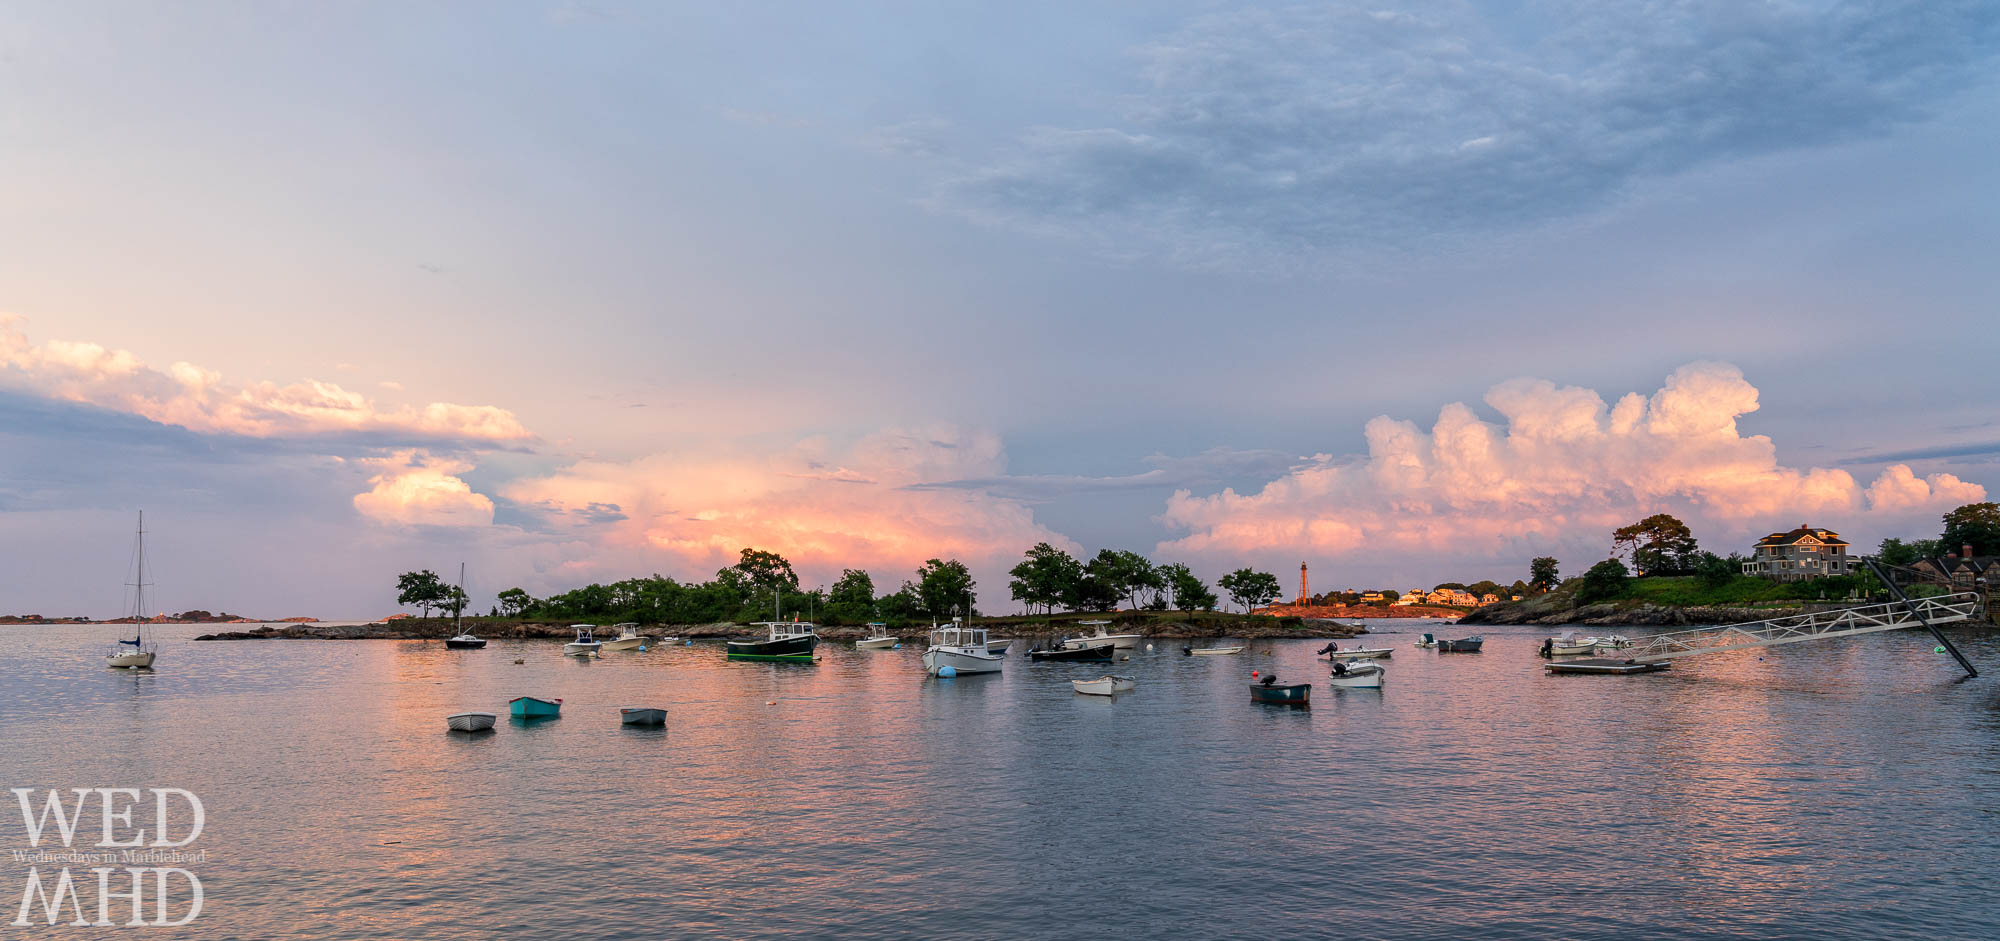 Clouds gather over Little Harbor with sunset bathing them in soft pink light on a calm Summer evening